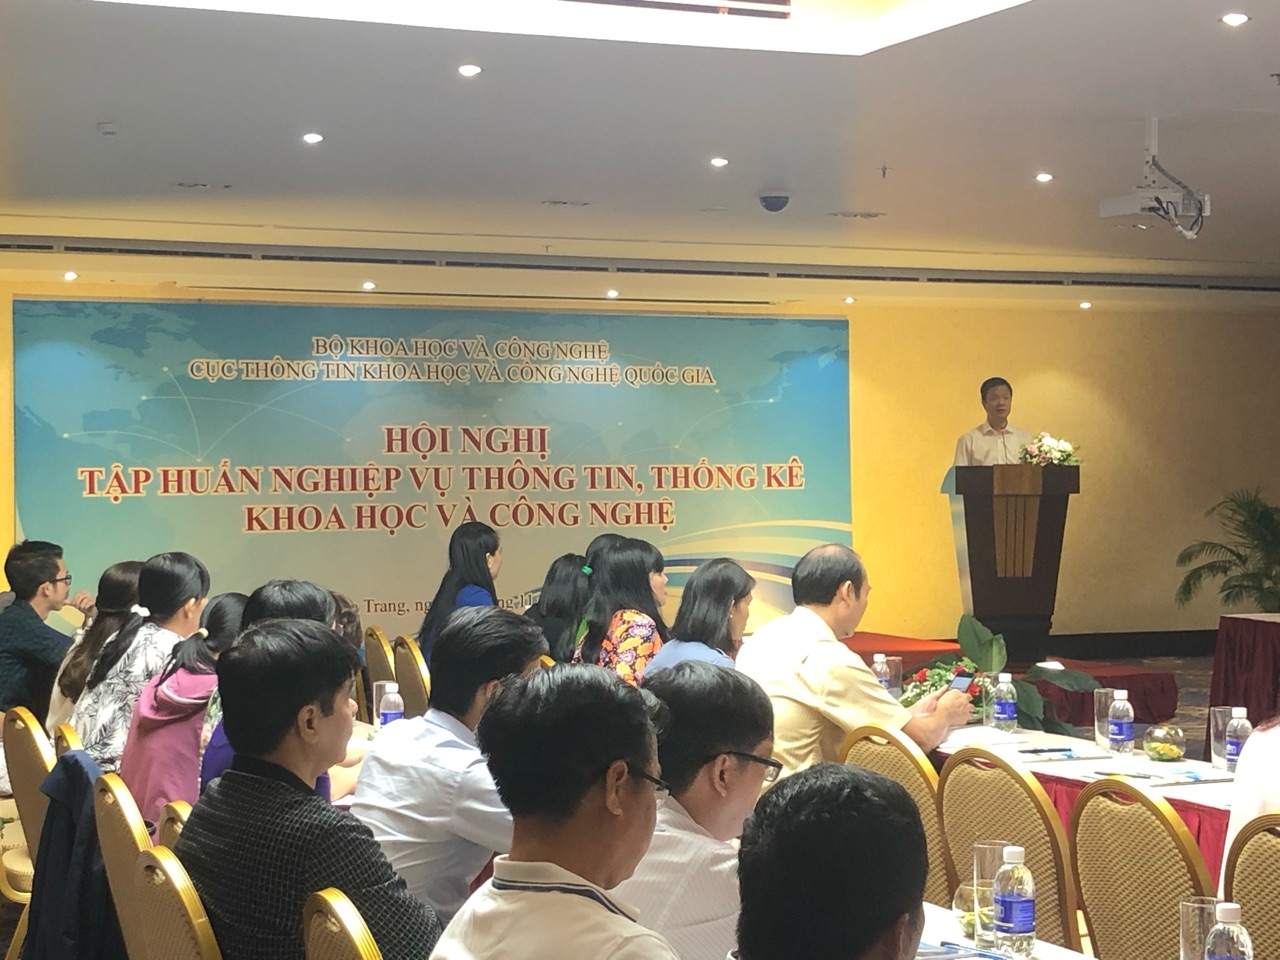 Dong Nai Department of Science and Technology (DOST) participated in the training conference on scientific and technological information and statistics